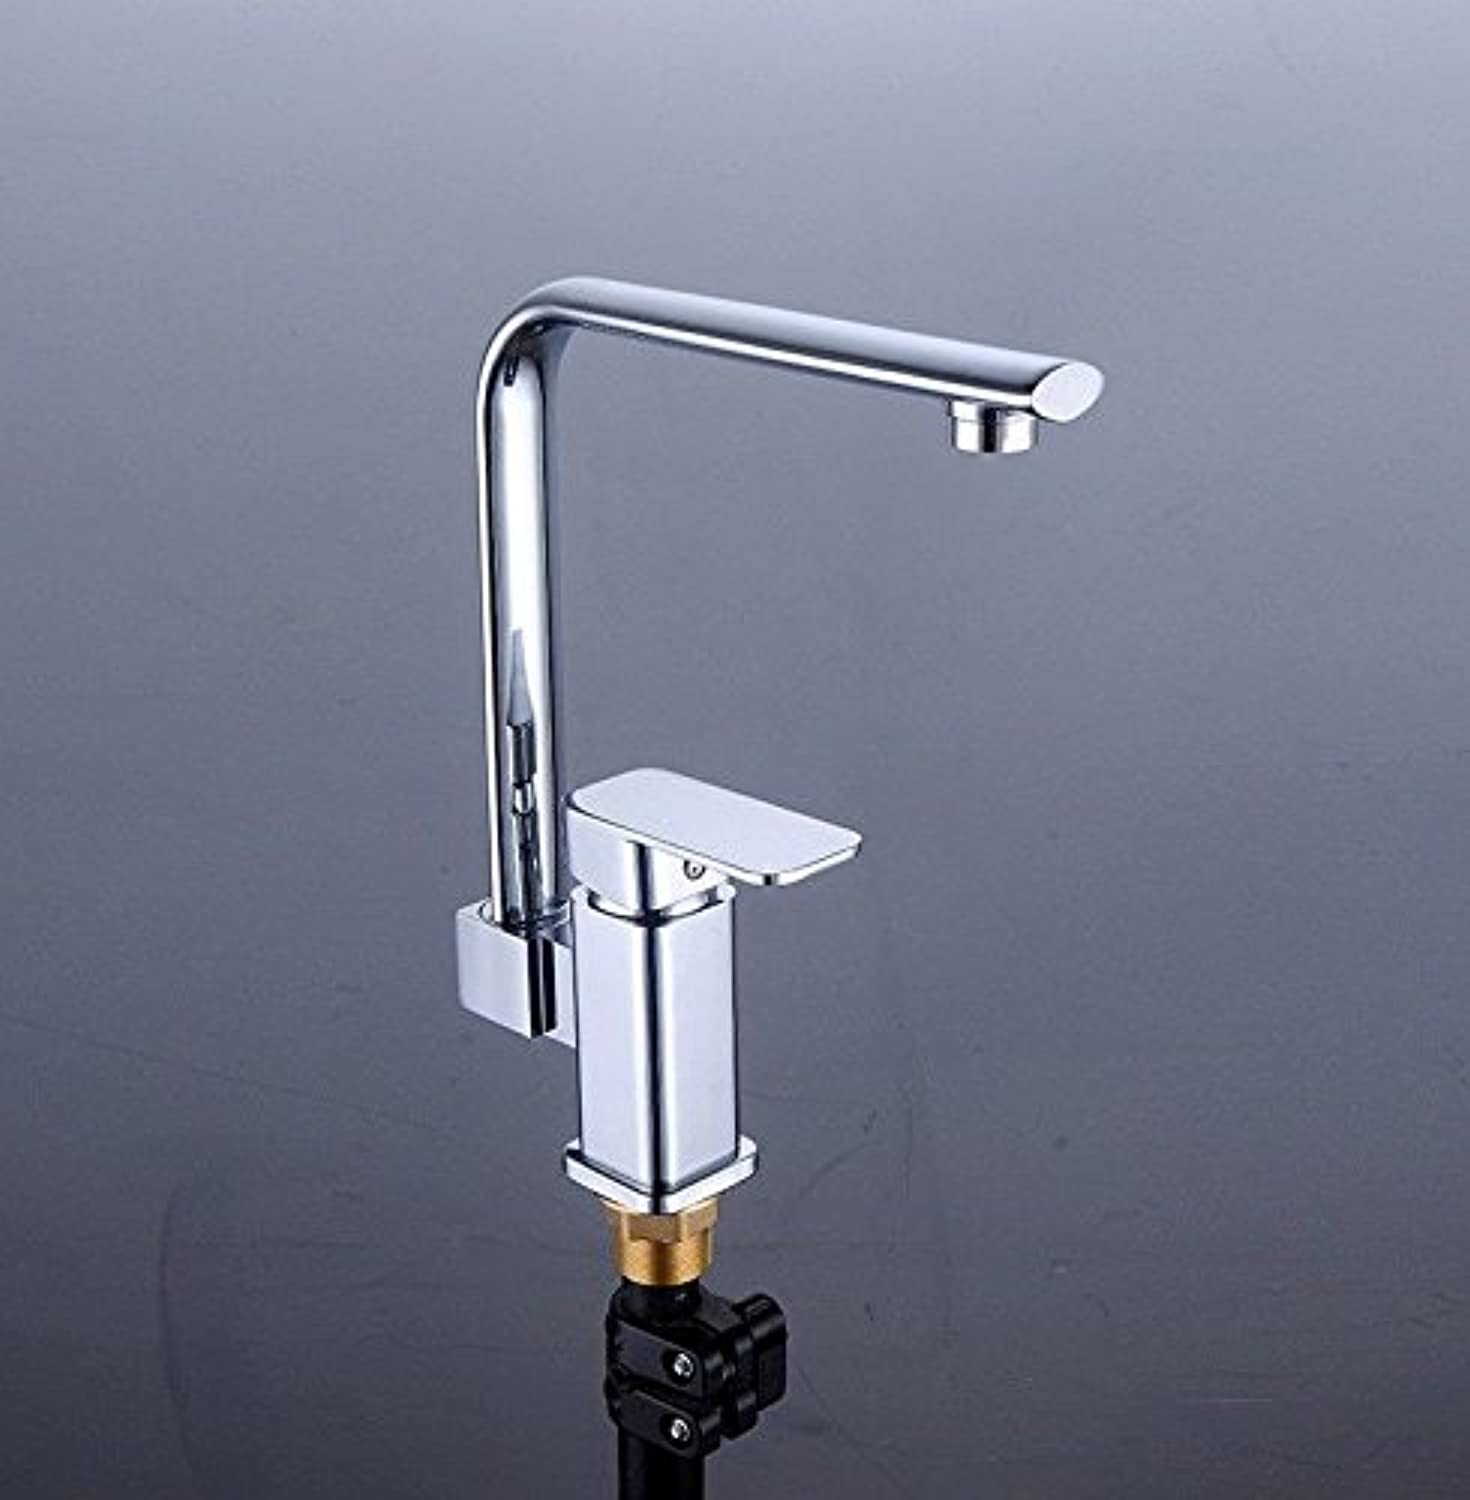 Commercial Single Lever Pull Down Kitchen Sink Faucet Brass Constructed Polished Kitchen Faucet Plating Lead-Free High Pole Sink Faucet